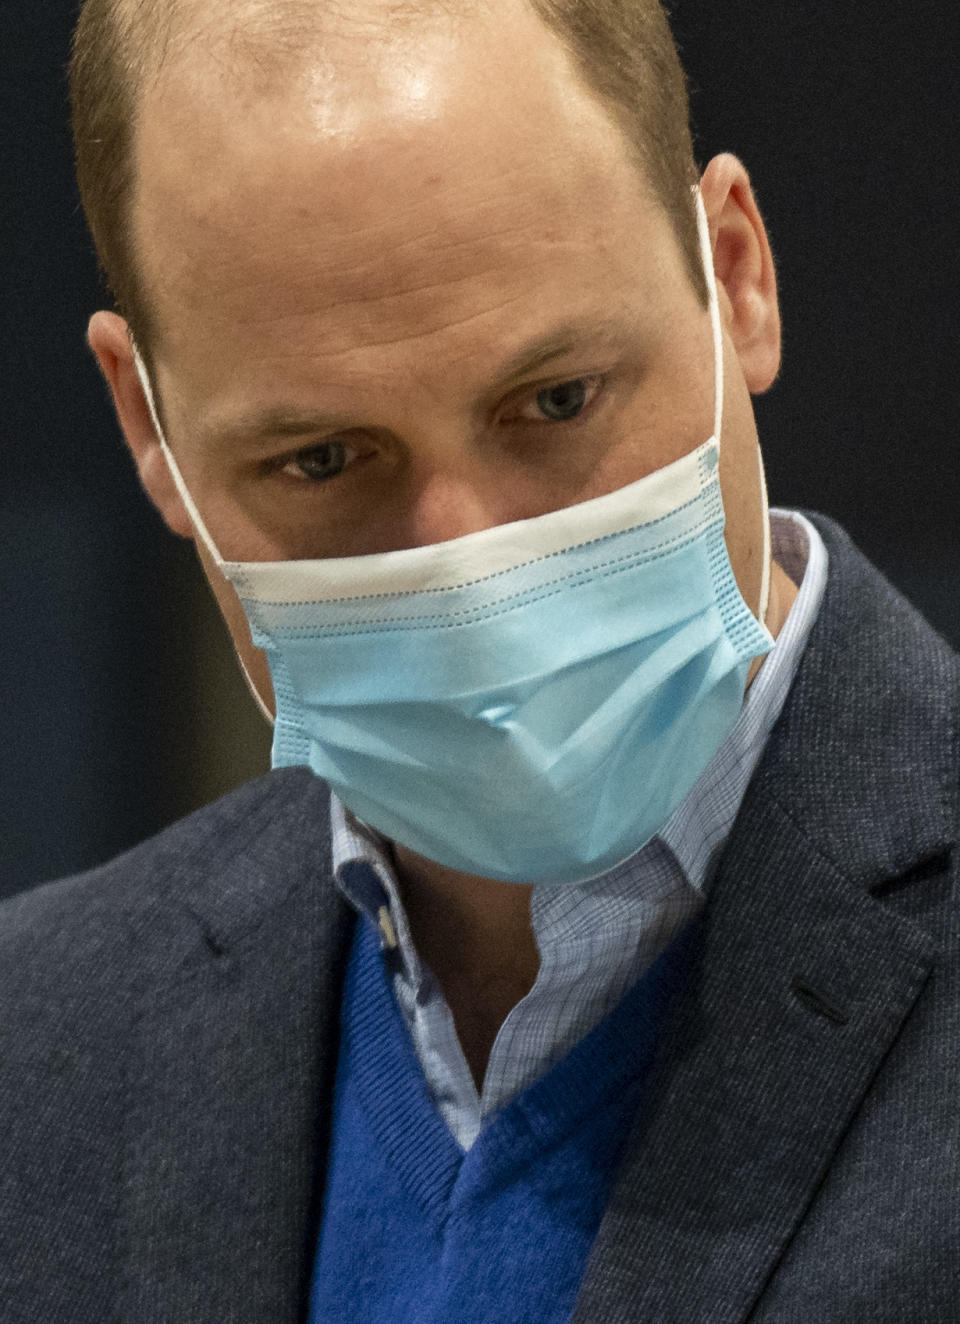 Britain's Prince William, Duke of Cambridge wears a face mask because of the pandemic as he visits a coronavirus vaccination centre at Kings Lynn Corn Exchange in King's Lynn, eastern England, on February 22, 2021. - Prince William spoke to NHS staff and volunteers about their experiences of being involved in the largest vaccination programme in British history. The Duke also met and spoke with a number of people receiving their vaccine that day.